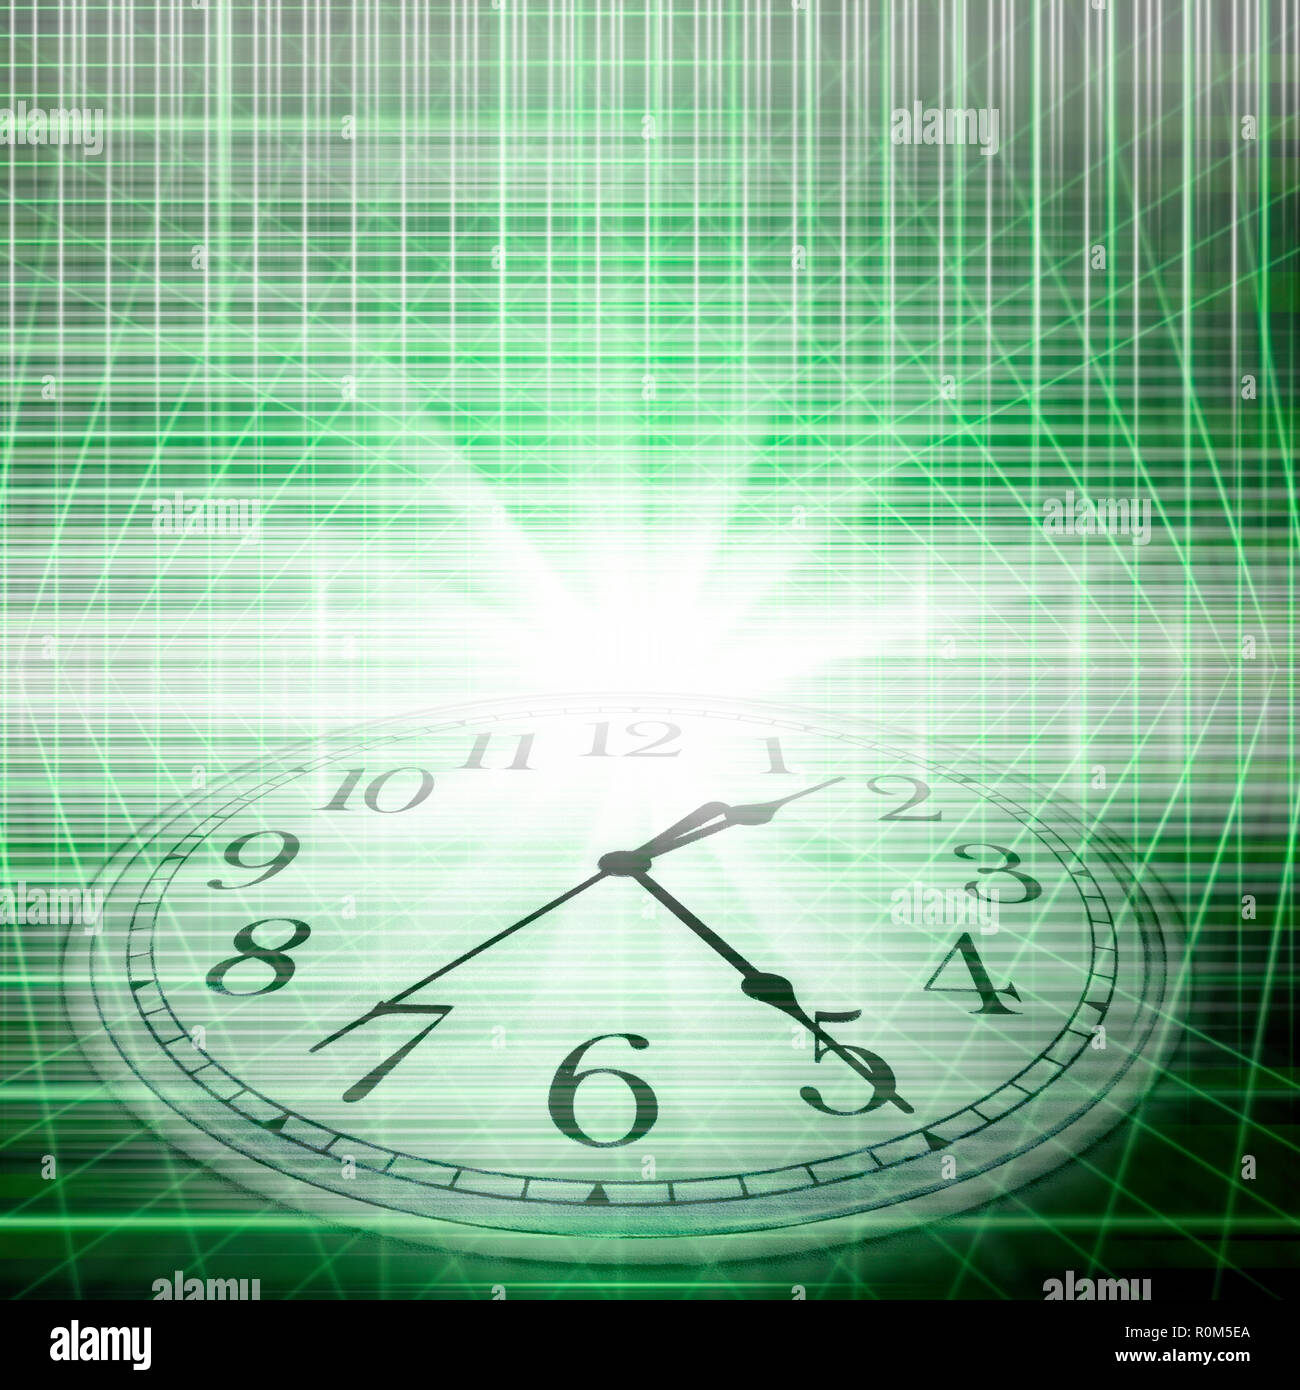 conceptual technology and time image of clock and abstract lights Stock Photo